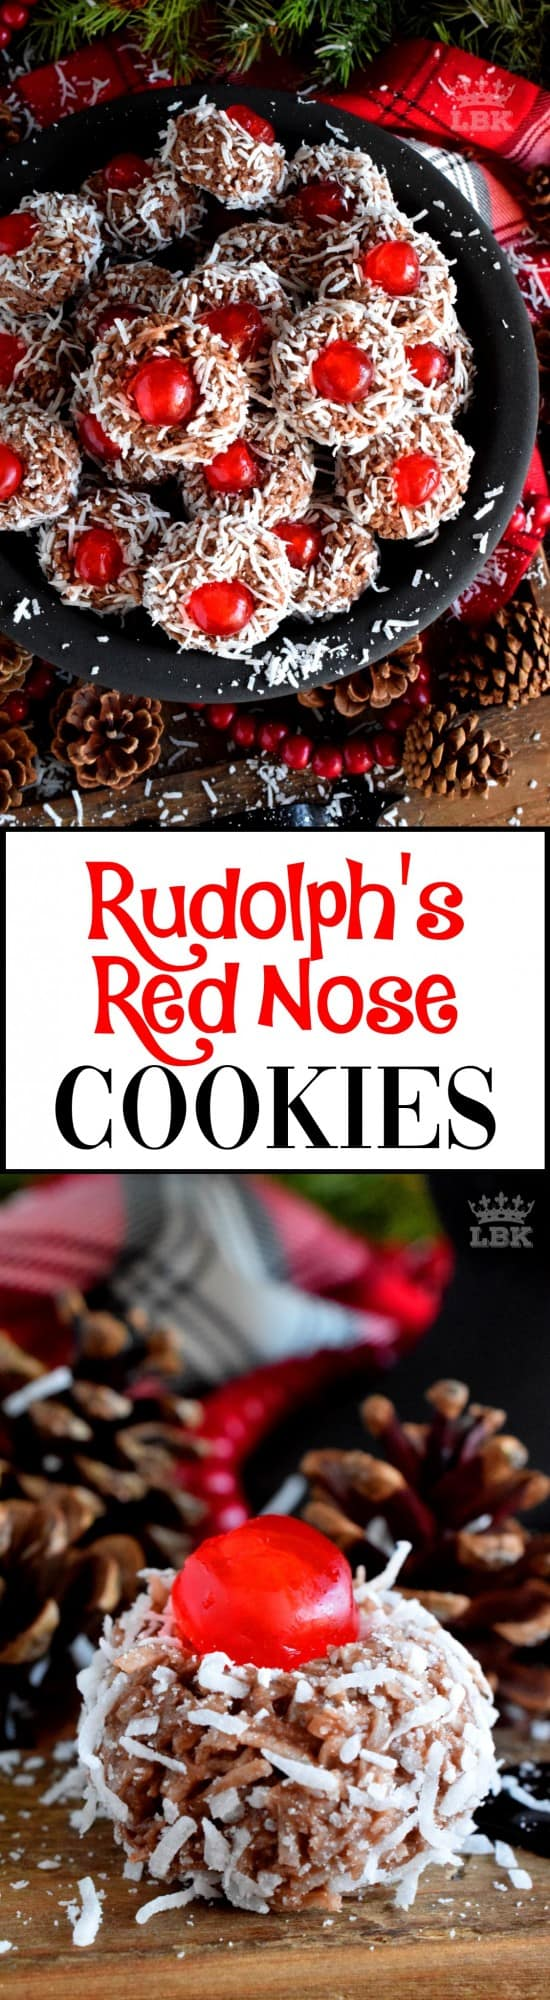 Rudolph's Red Nose Cookies - Santa Claus is coming to town and he's going to need Rudolph's Red Nose to guide his sleigh! Welcome to the 24 Cookies of Christmas countdown! #rudolph #reindeer #cookies #christmas #holiday #baking #advent #countdown